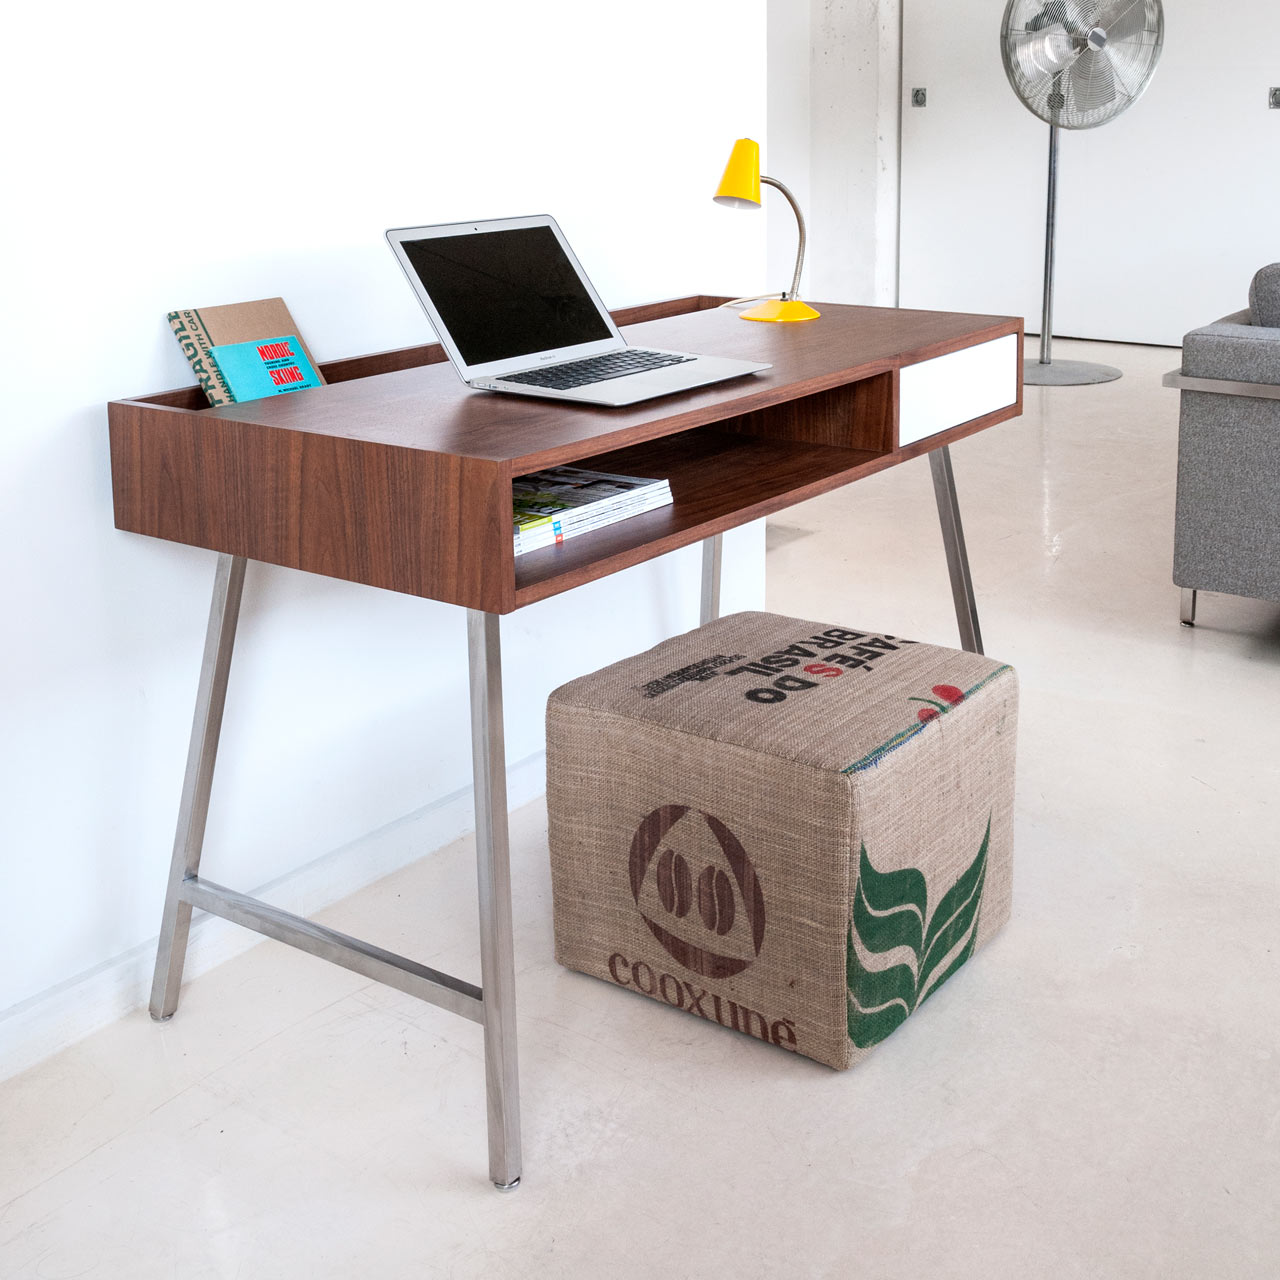 Modern Desks From Gus*Modern ...